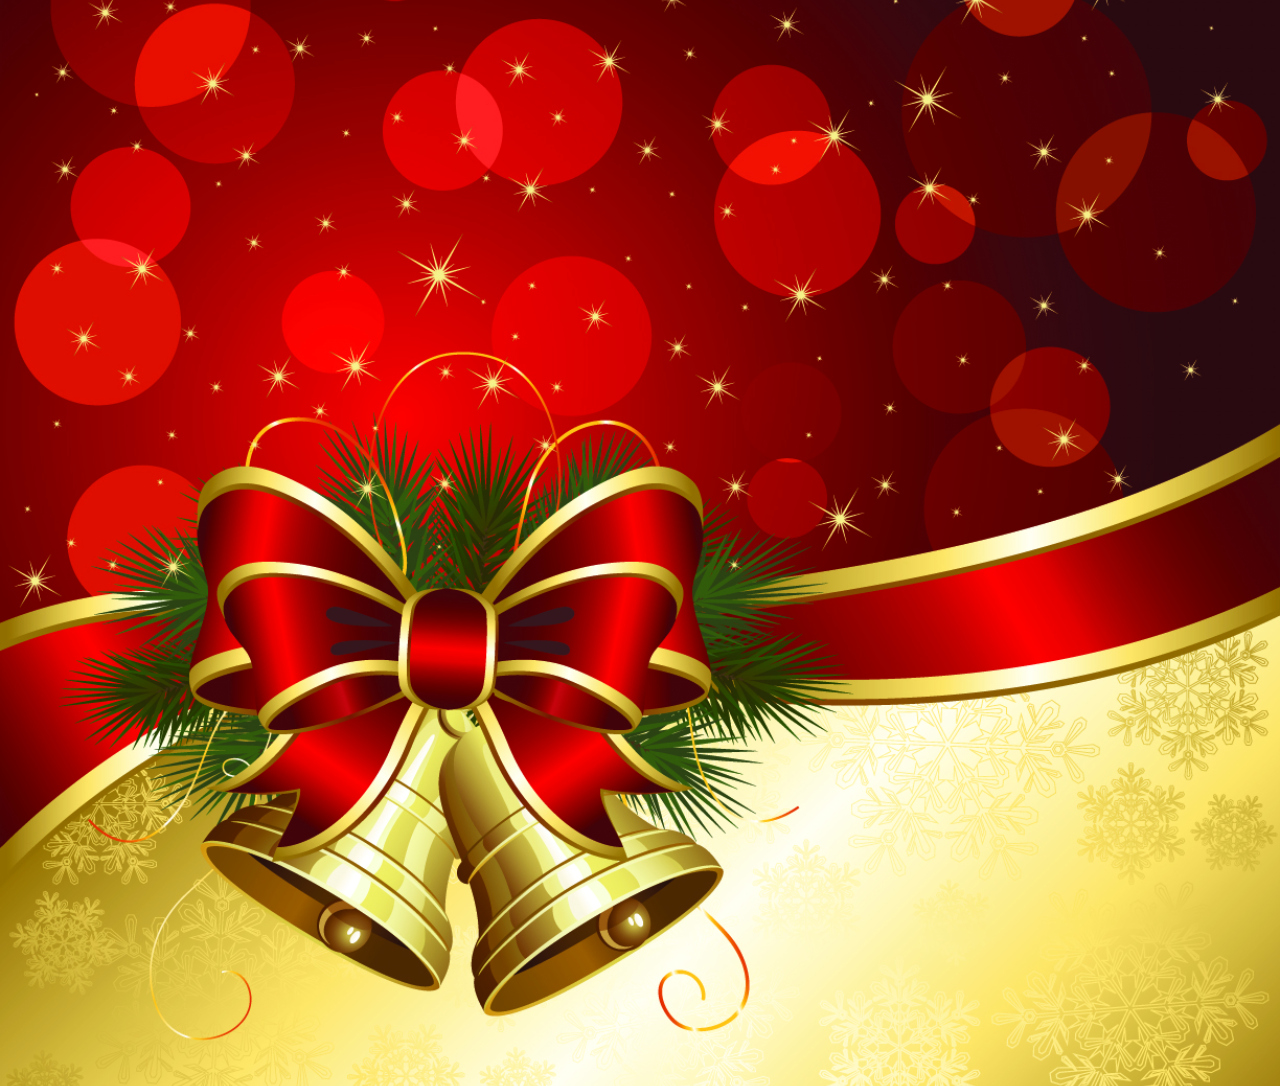 Christmas images Merry Christmas HD wallpaper and background photos ...